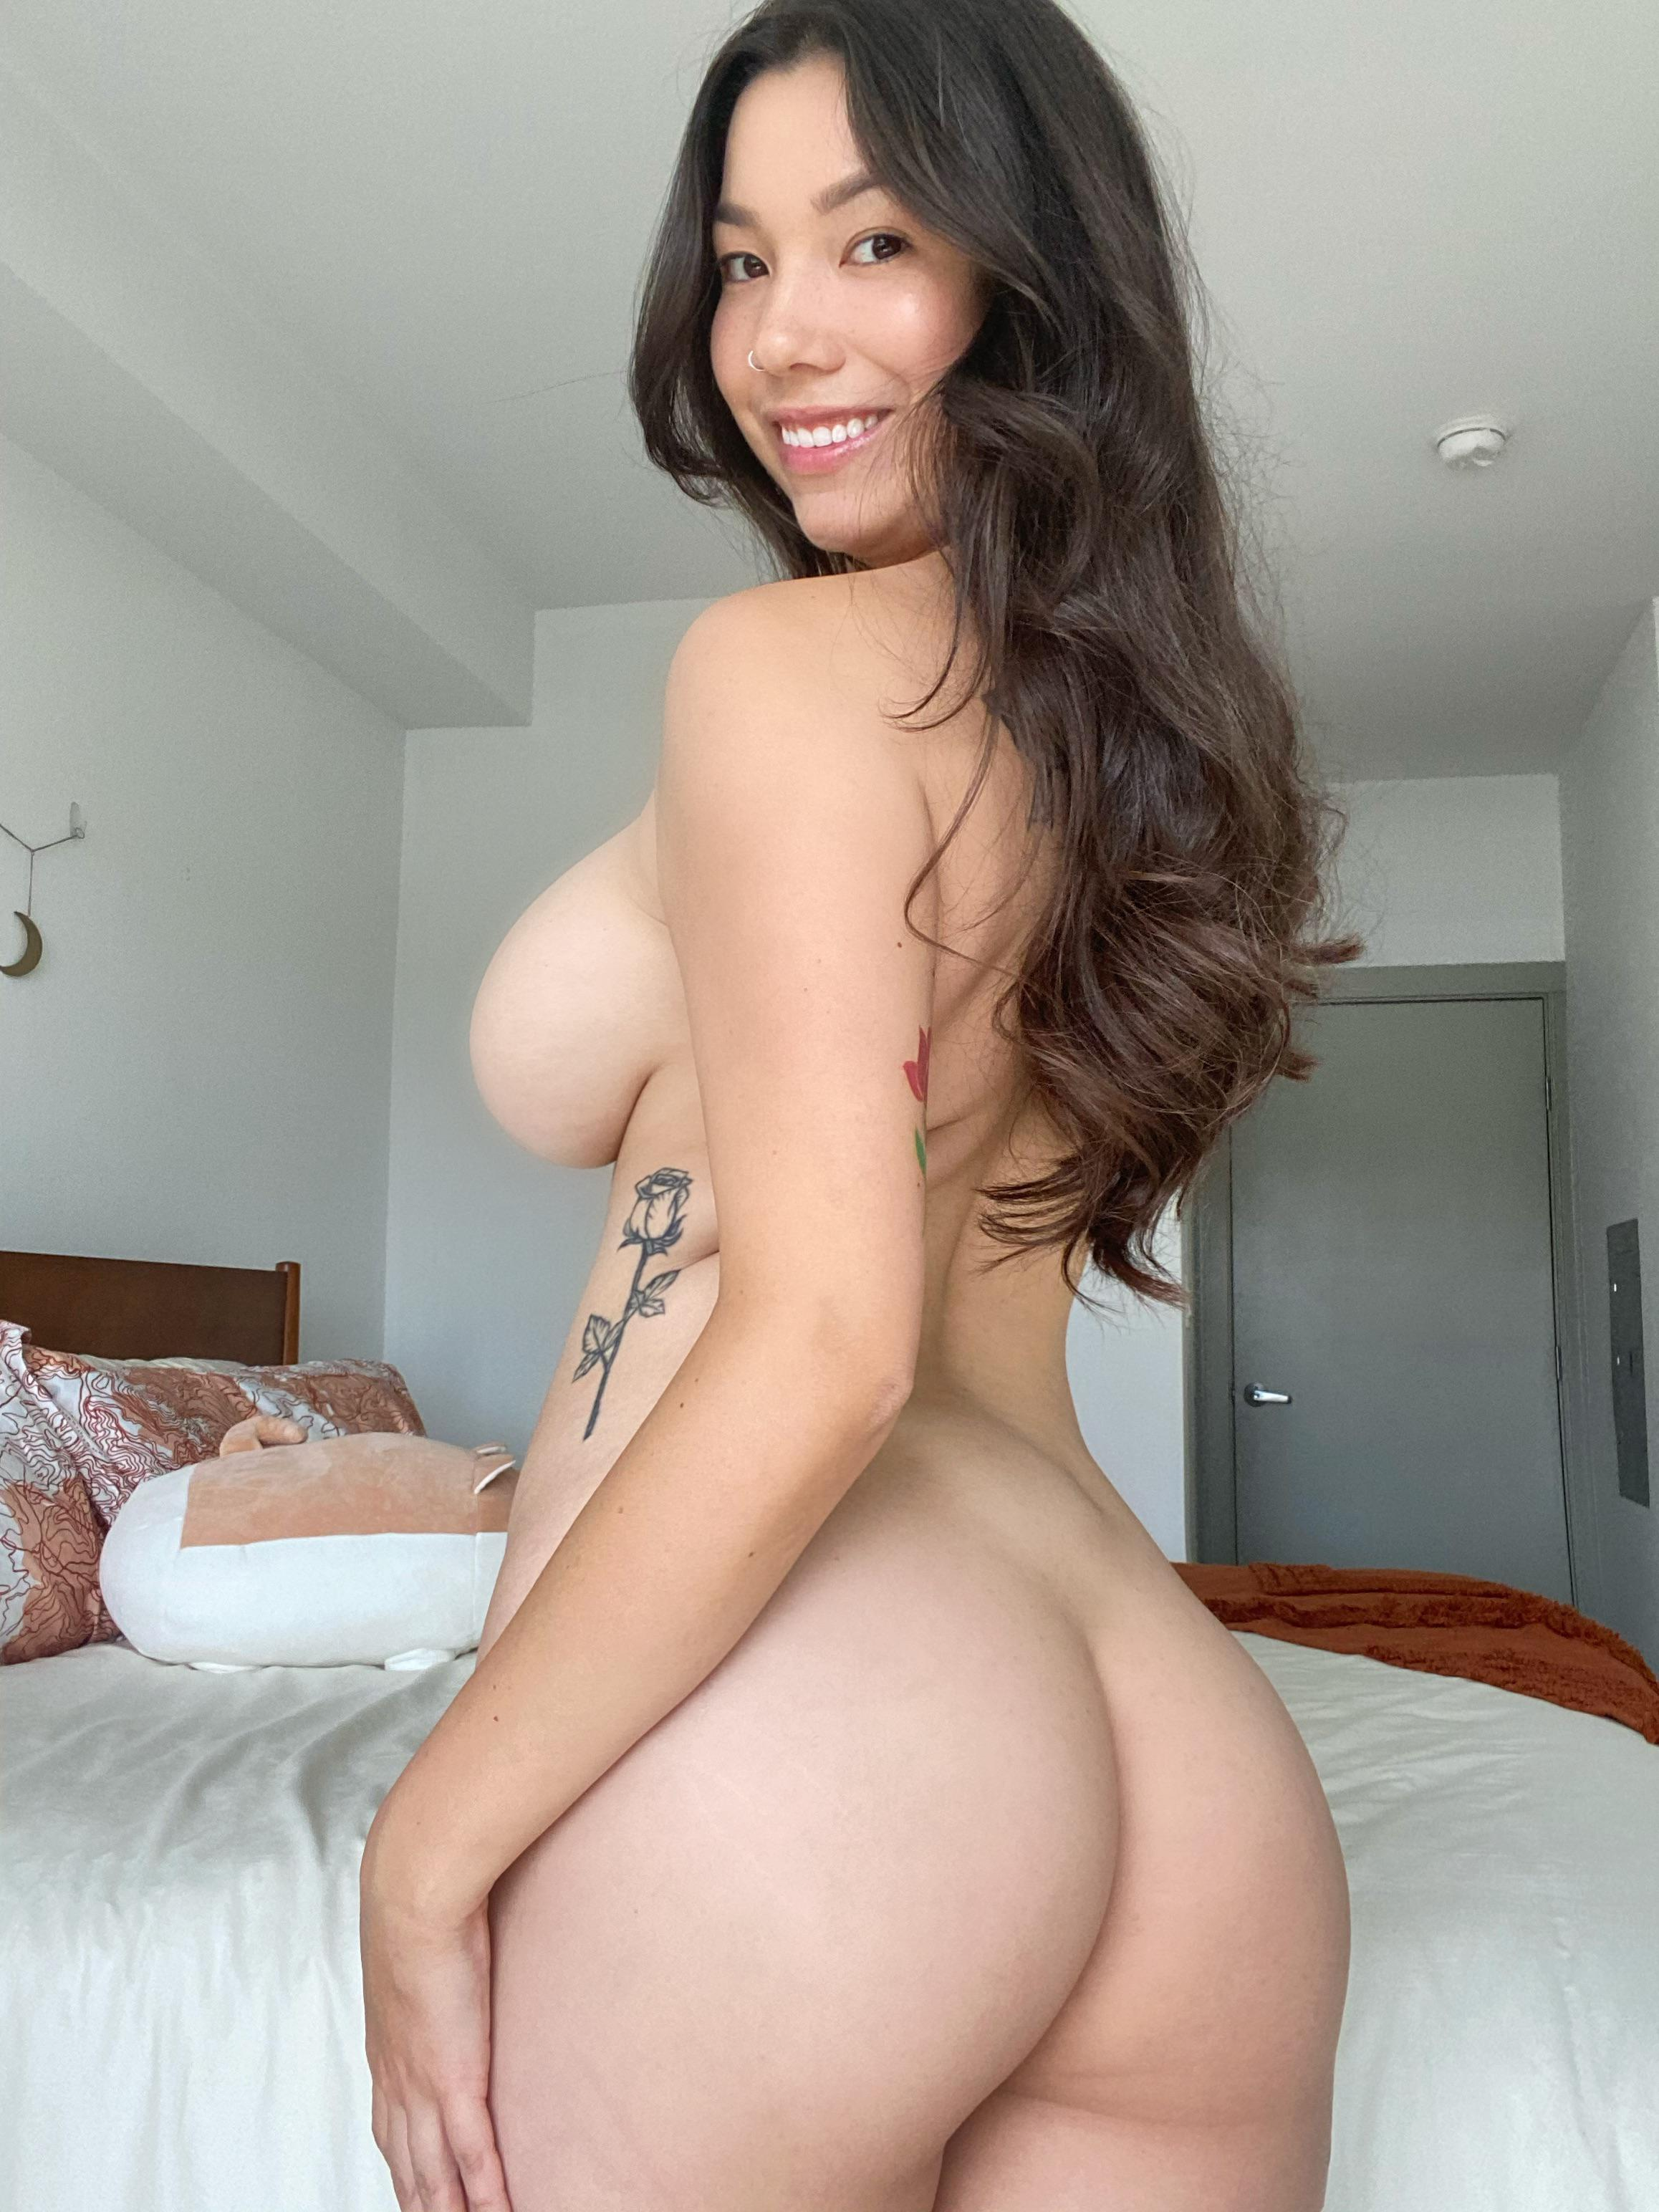 One of our naked asian pics called How badly do you want me to turn around?